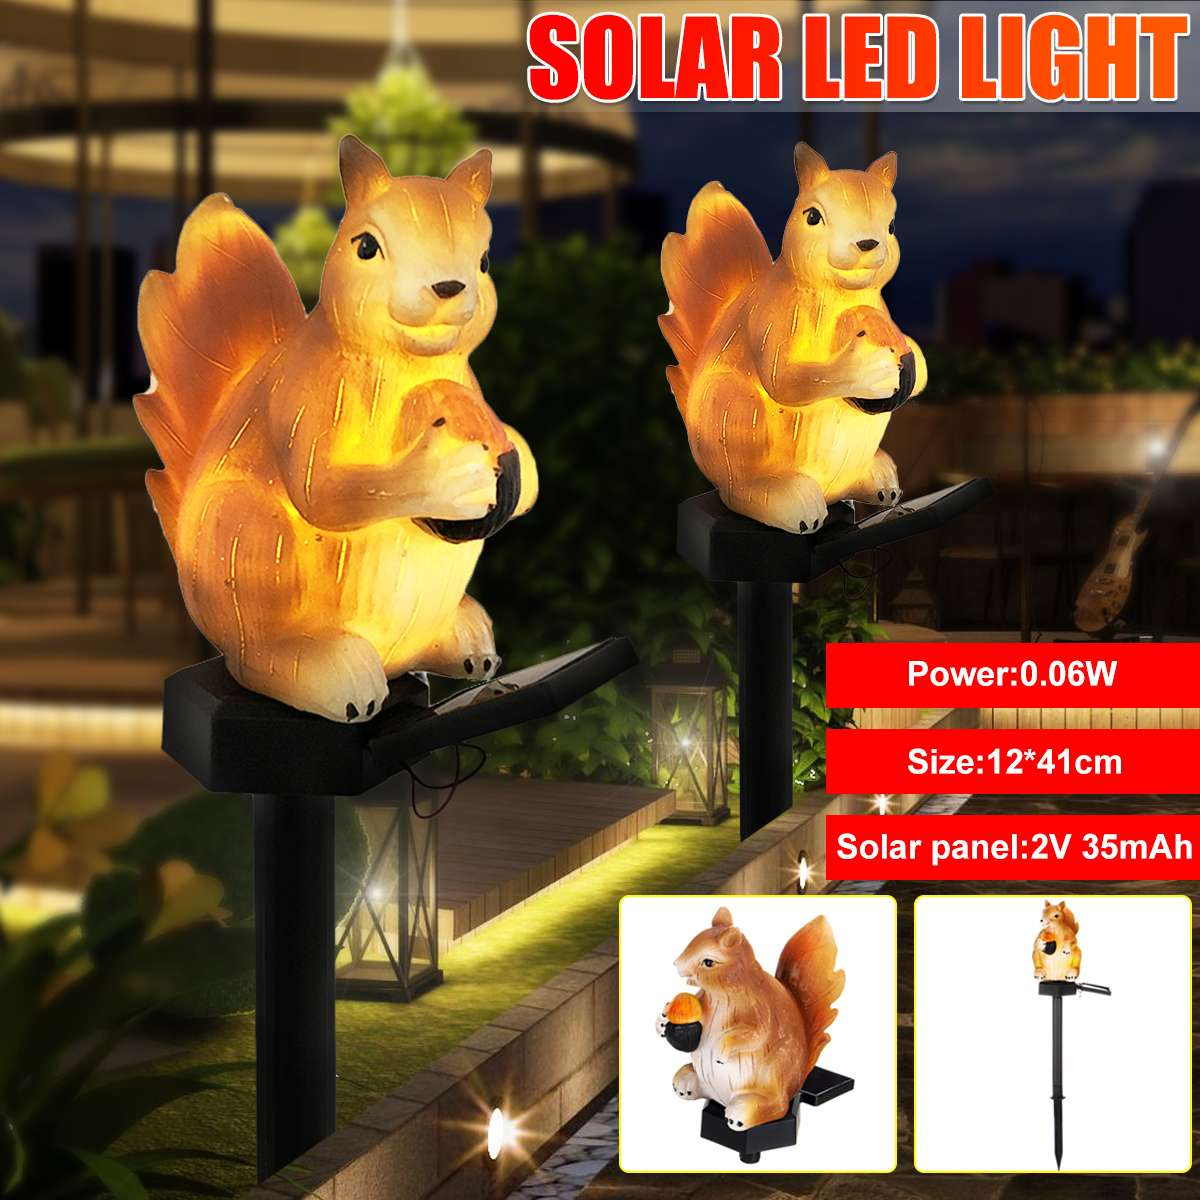 1PCS Solar Powered LED Lights Garden Yard Home Animal Lawn Lamp Ornament Outdoor Decor Sculpture Garden Statues Christmas Decor